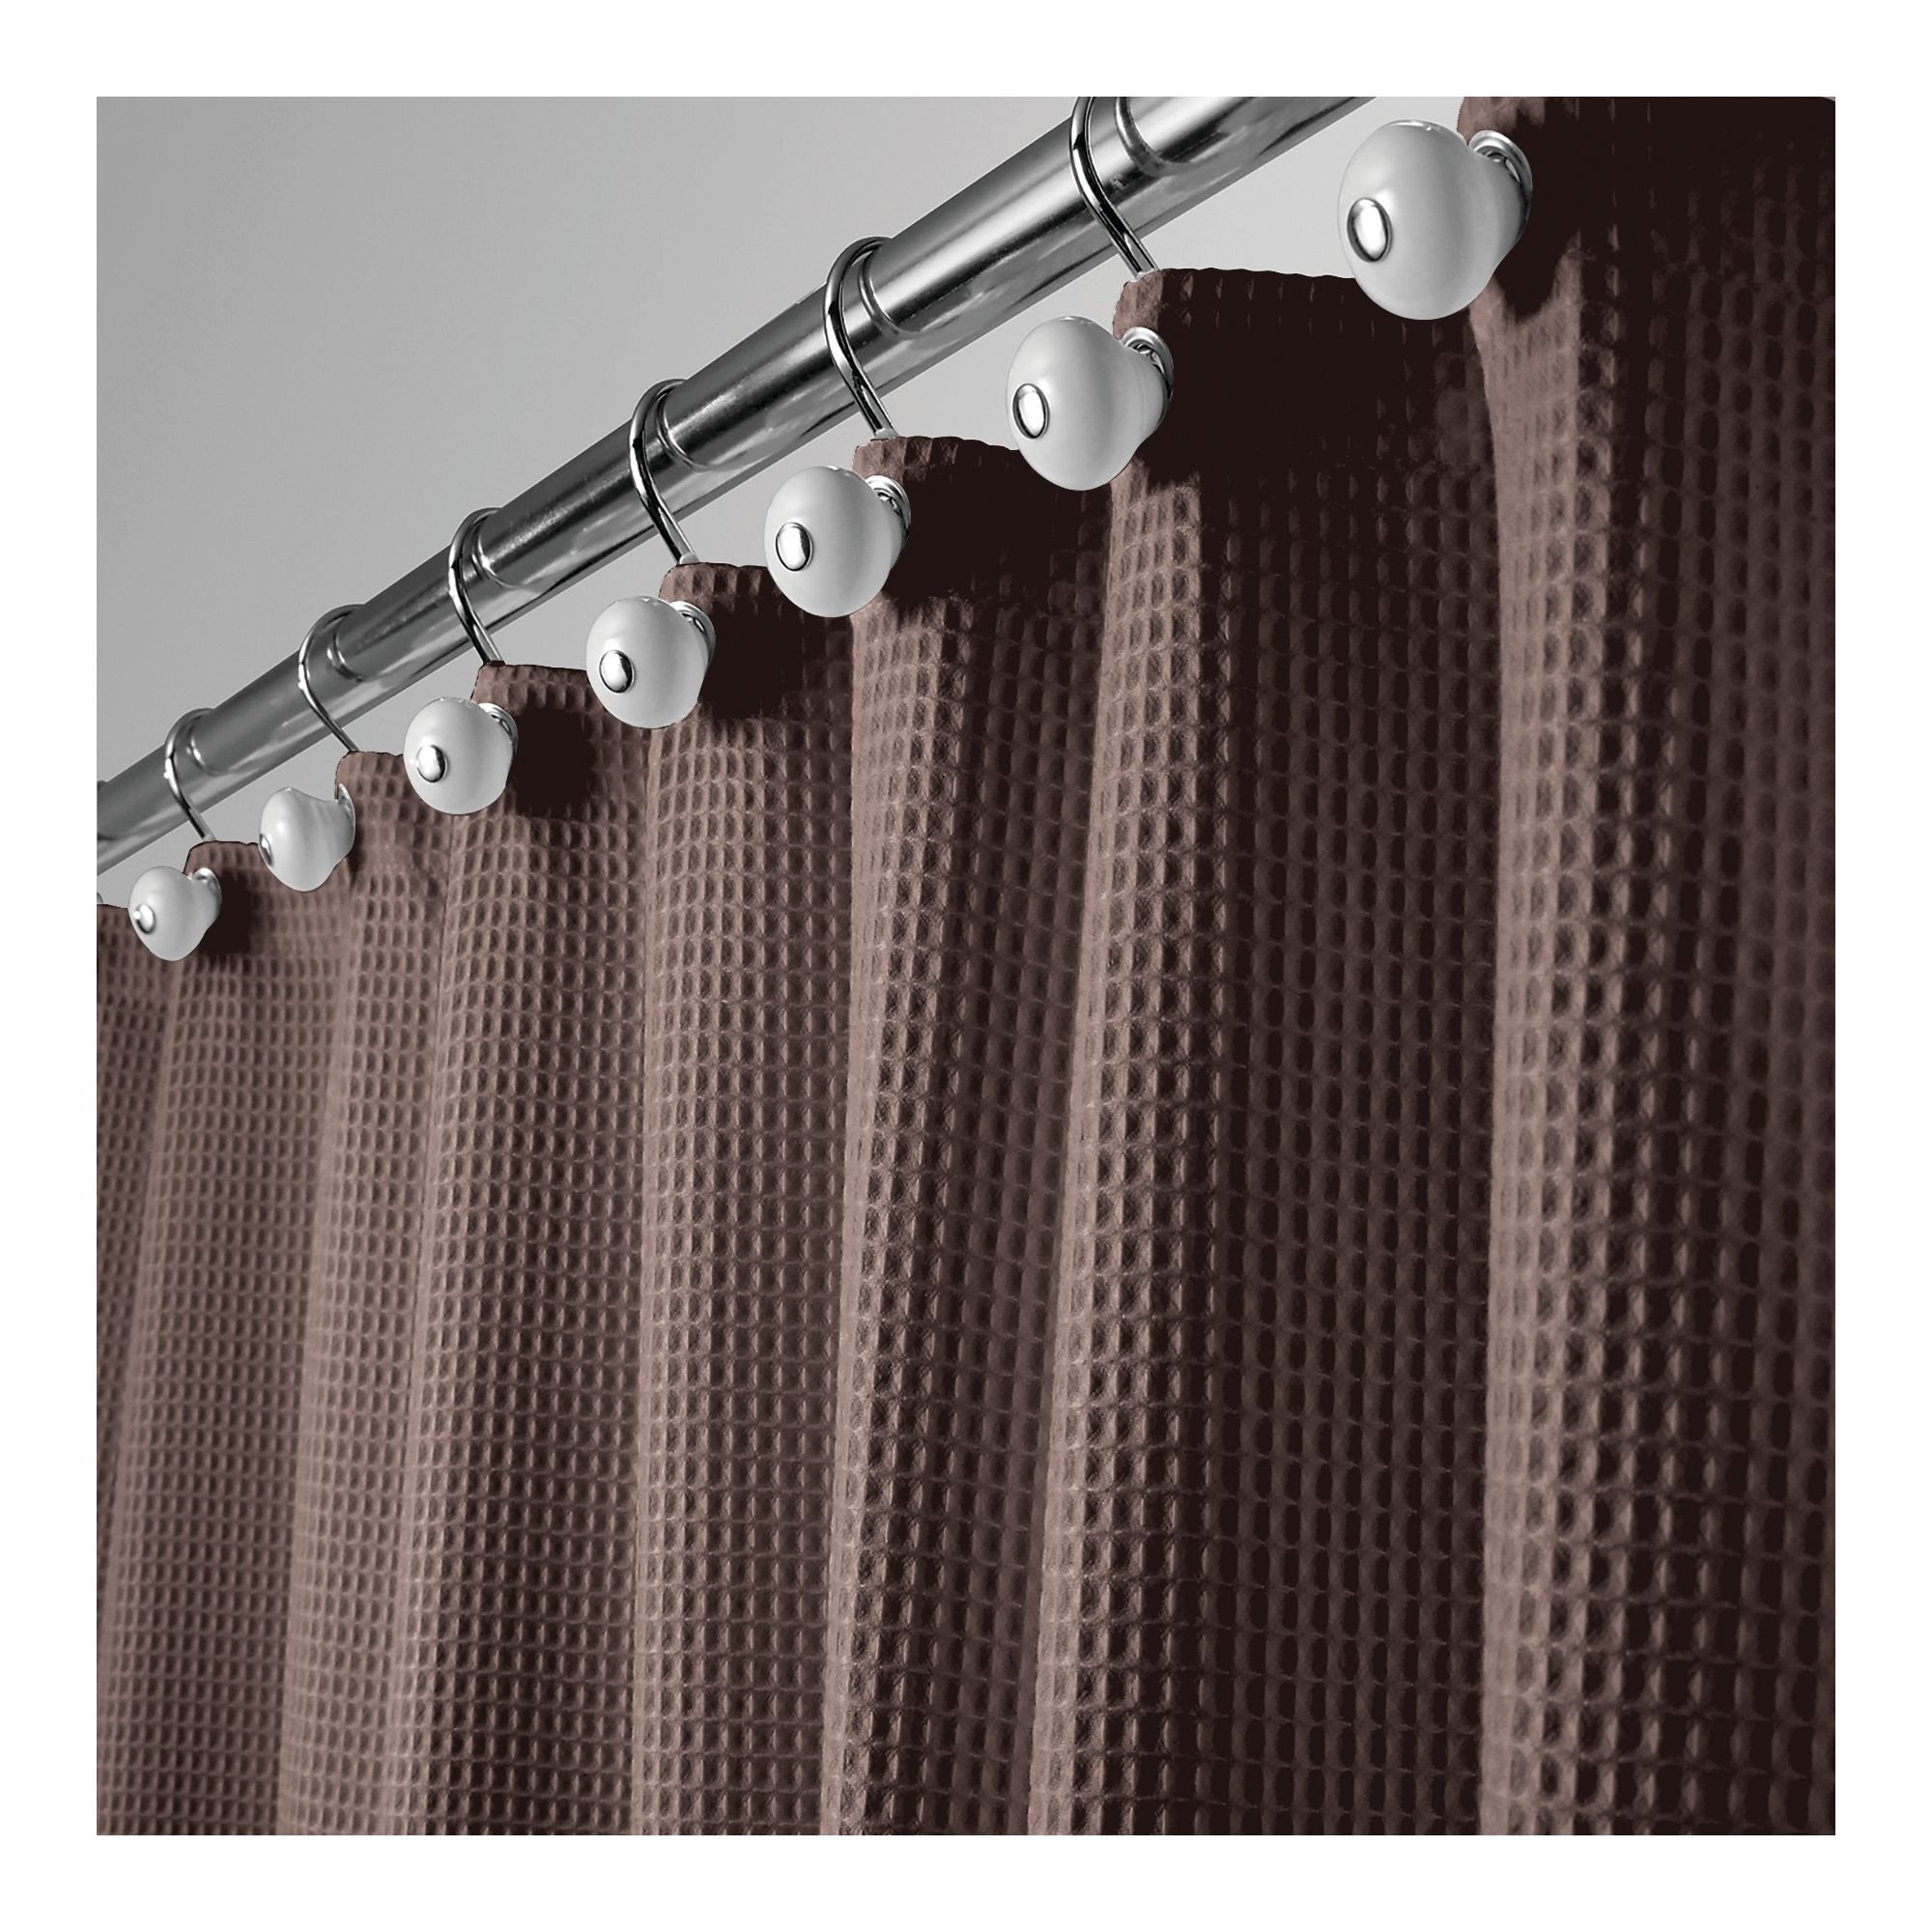 mDesign Long Hotel Quality Polyester/Cotton Blend Fabric Shower Curtain, Rustproof Metal Grommets - Waffle Weave for Bathroom Showers and Bathtubs - 72'' x 84'', Chocolate Brown